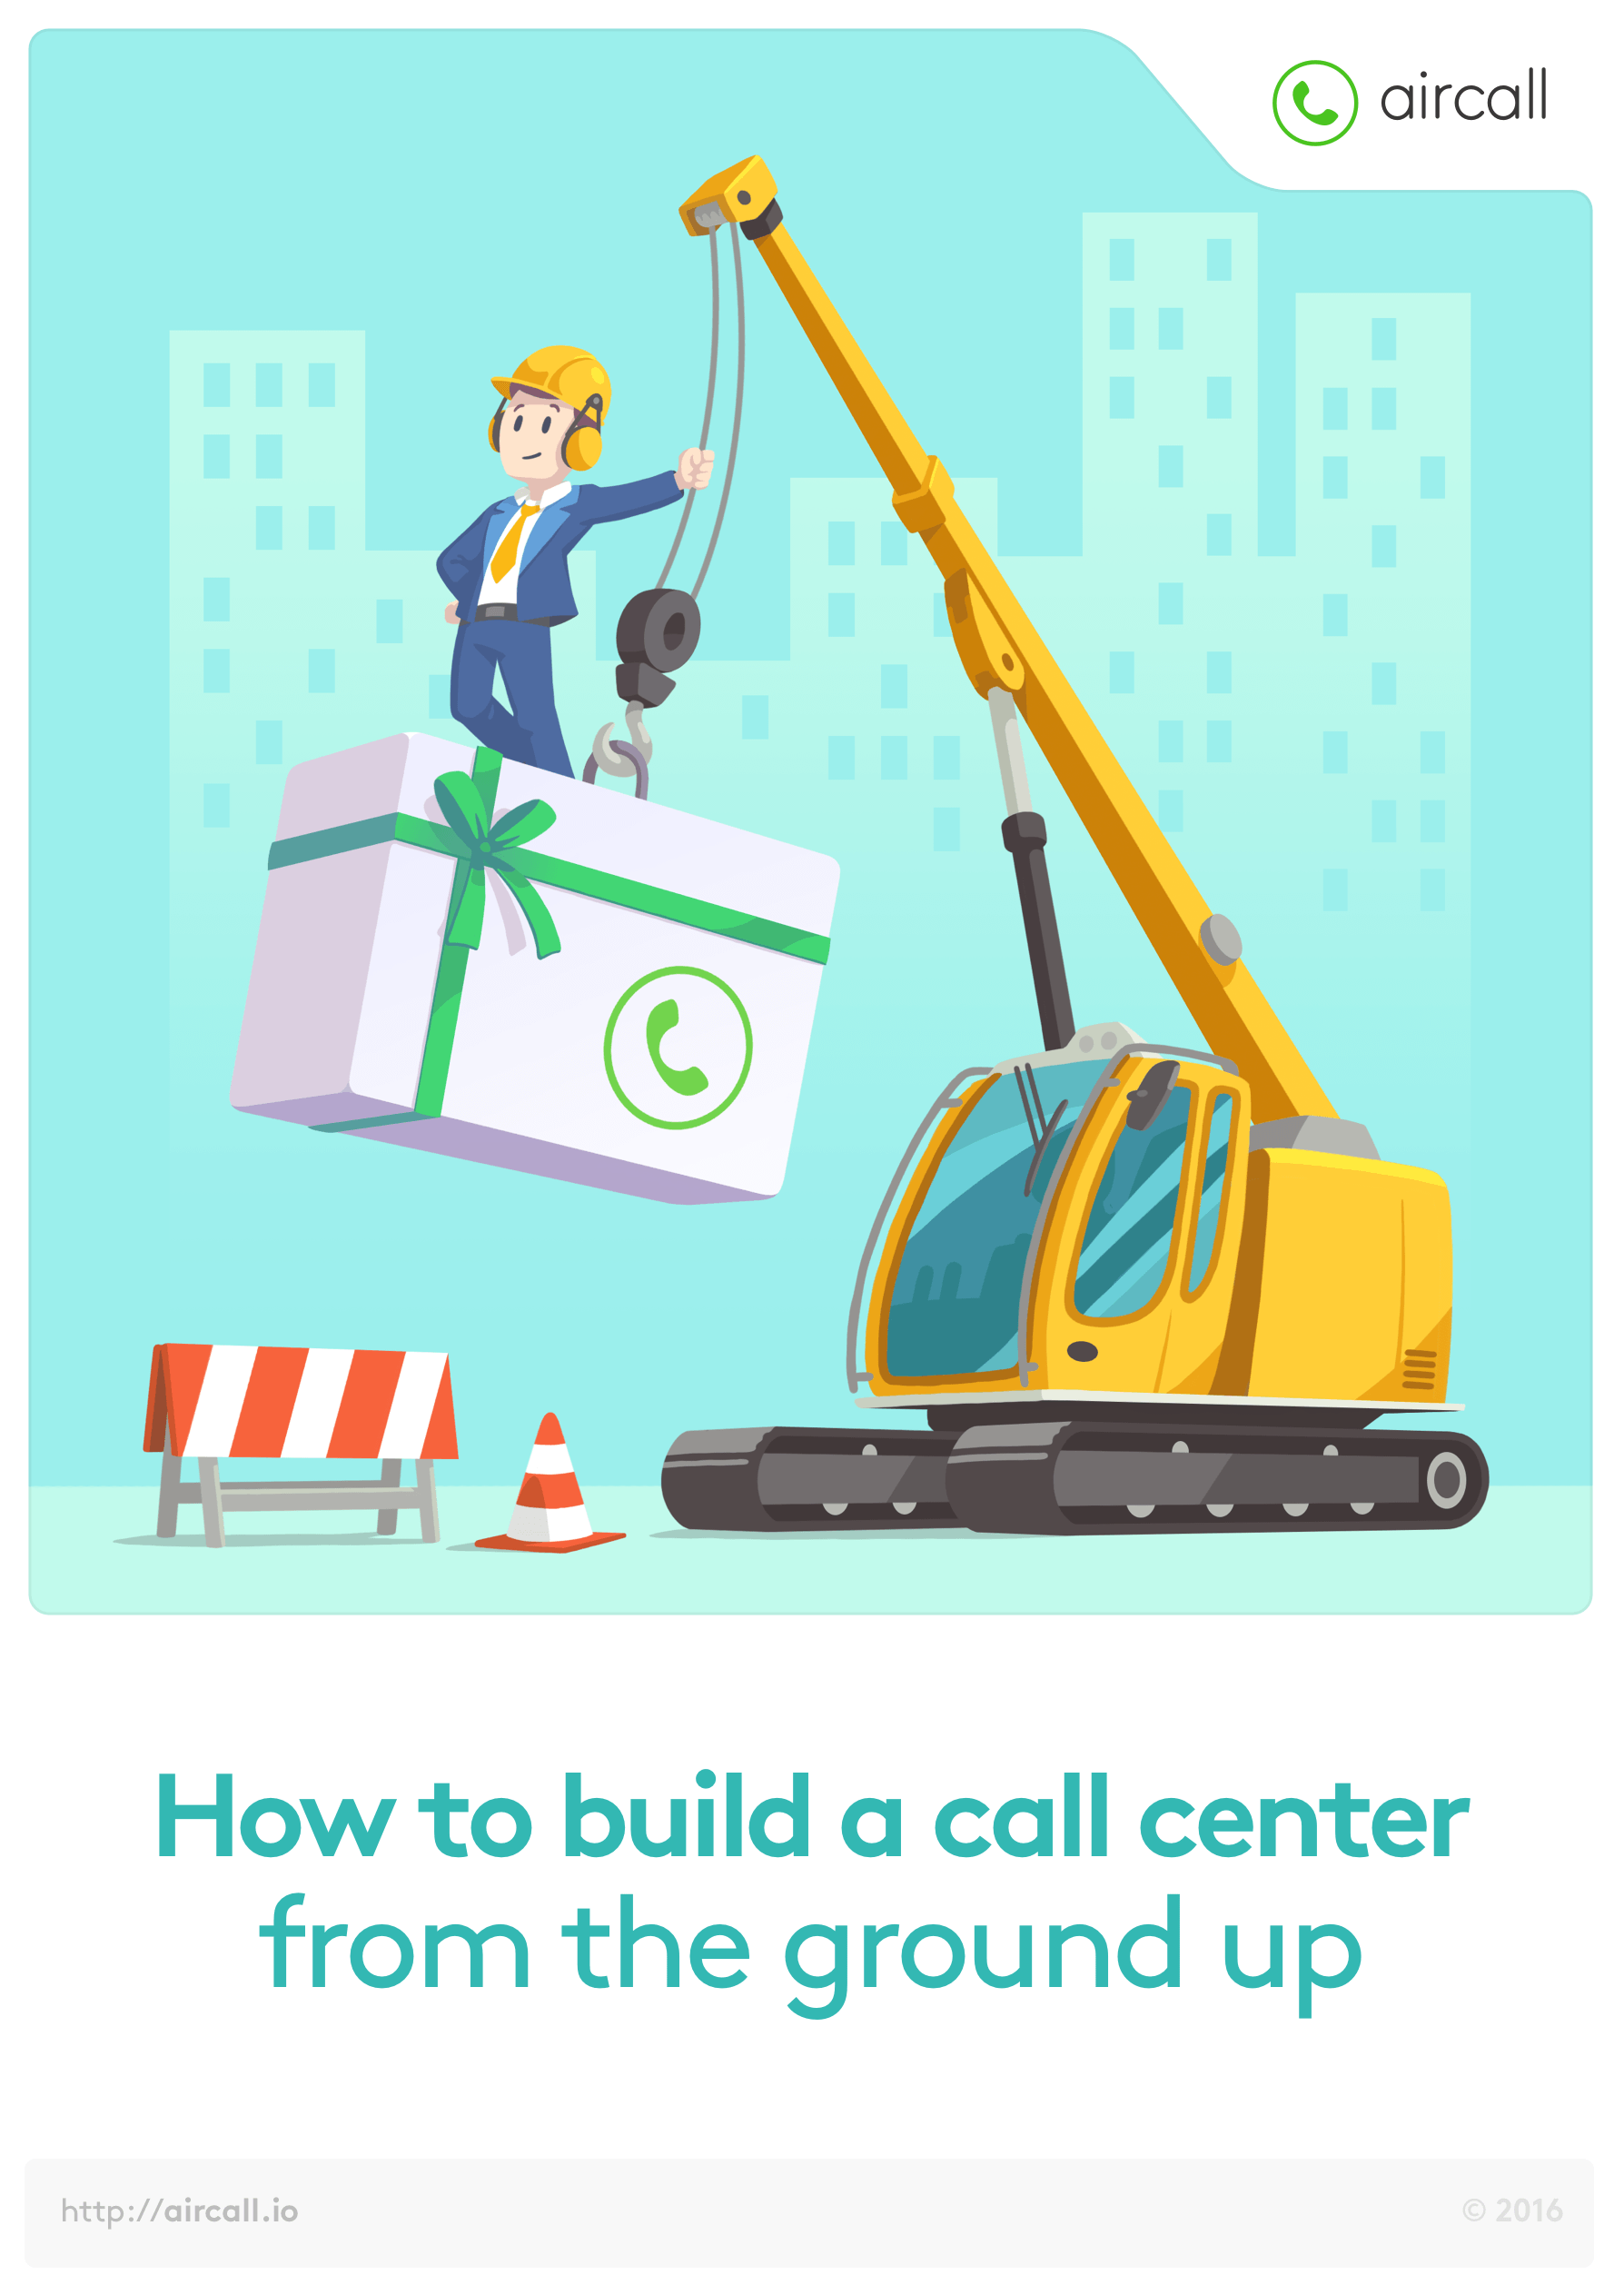 How to build a call center from the ground up.